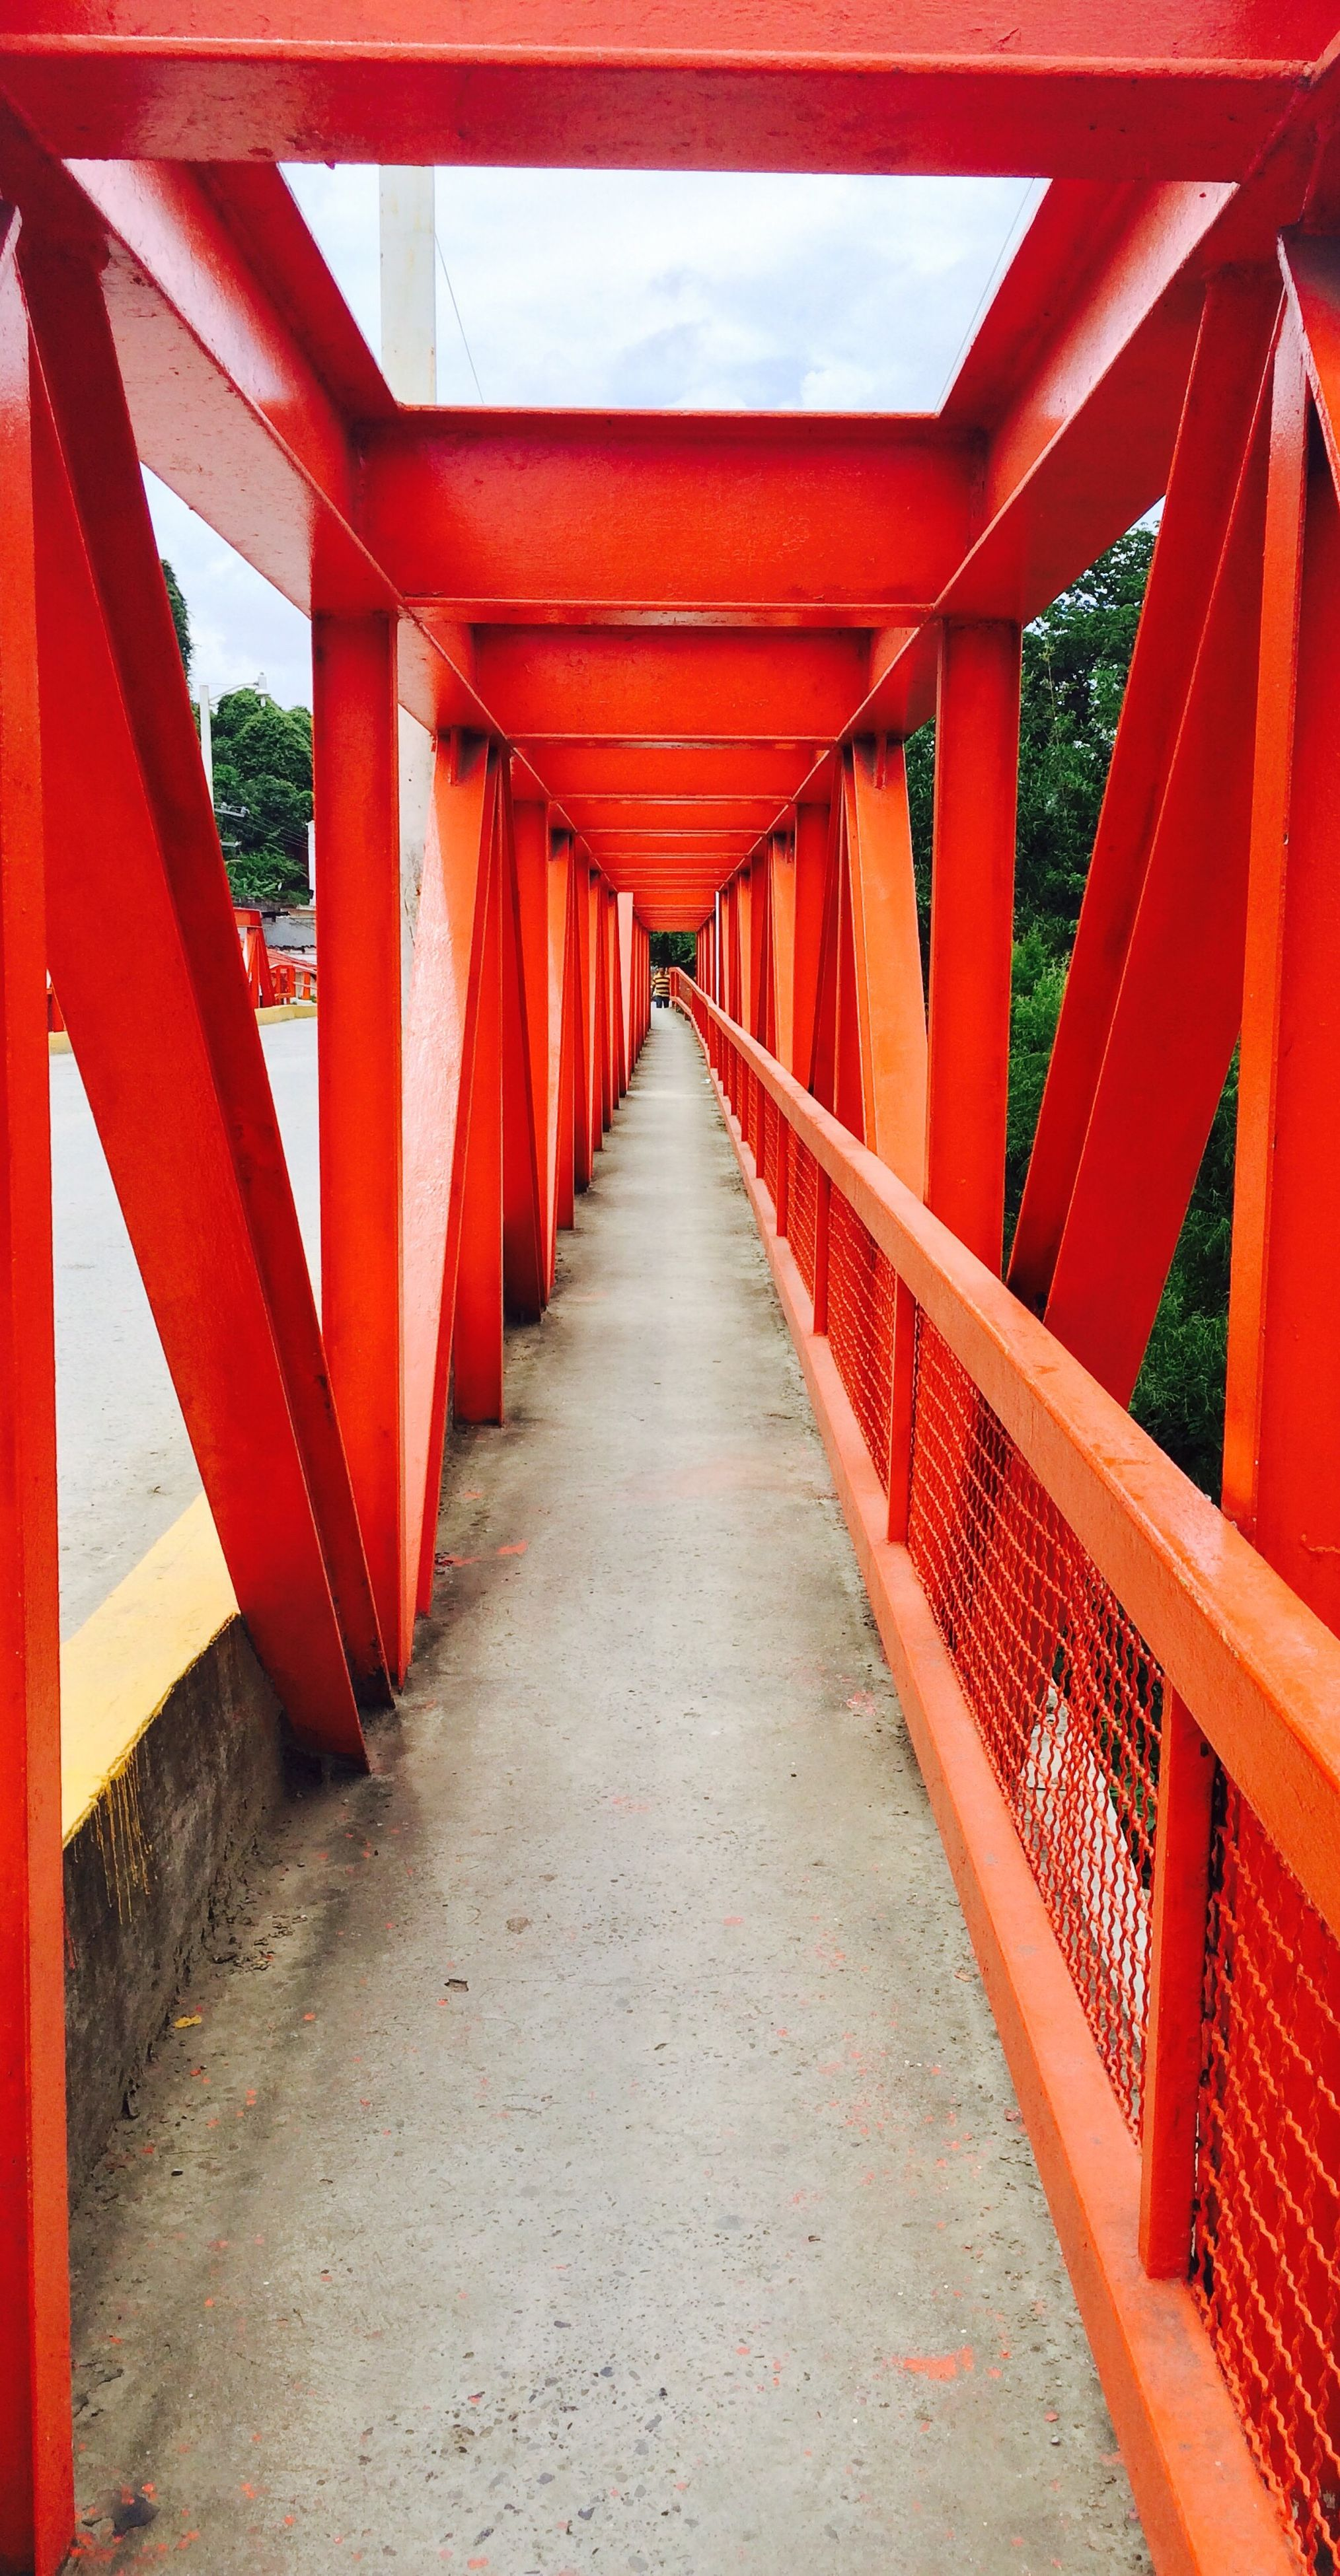 the way forward, architecture, built structure, diminishing perspective, narrow, long, bridge - man made structure, red, footbridge, connection, ceiling, walkway, elevated walkway, corridor, surface level, day, vanishing point, modern, covered bridge, architectural column, bridge, no people, pedestrian walkway